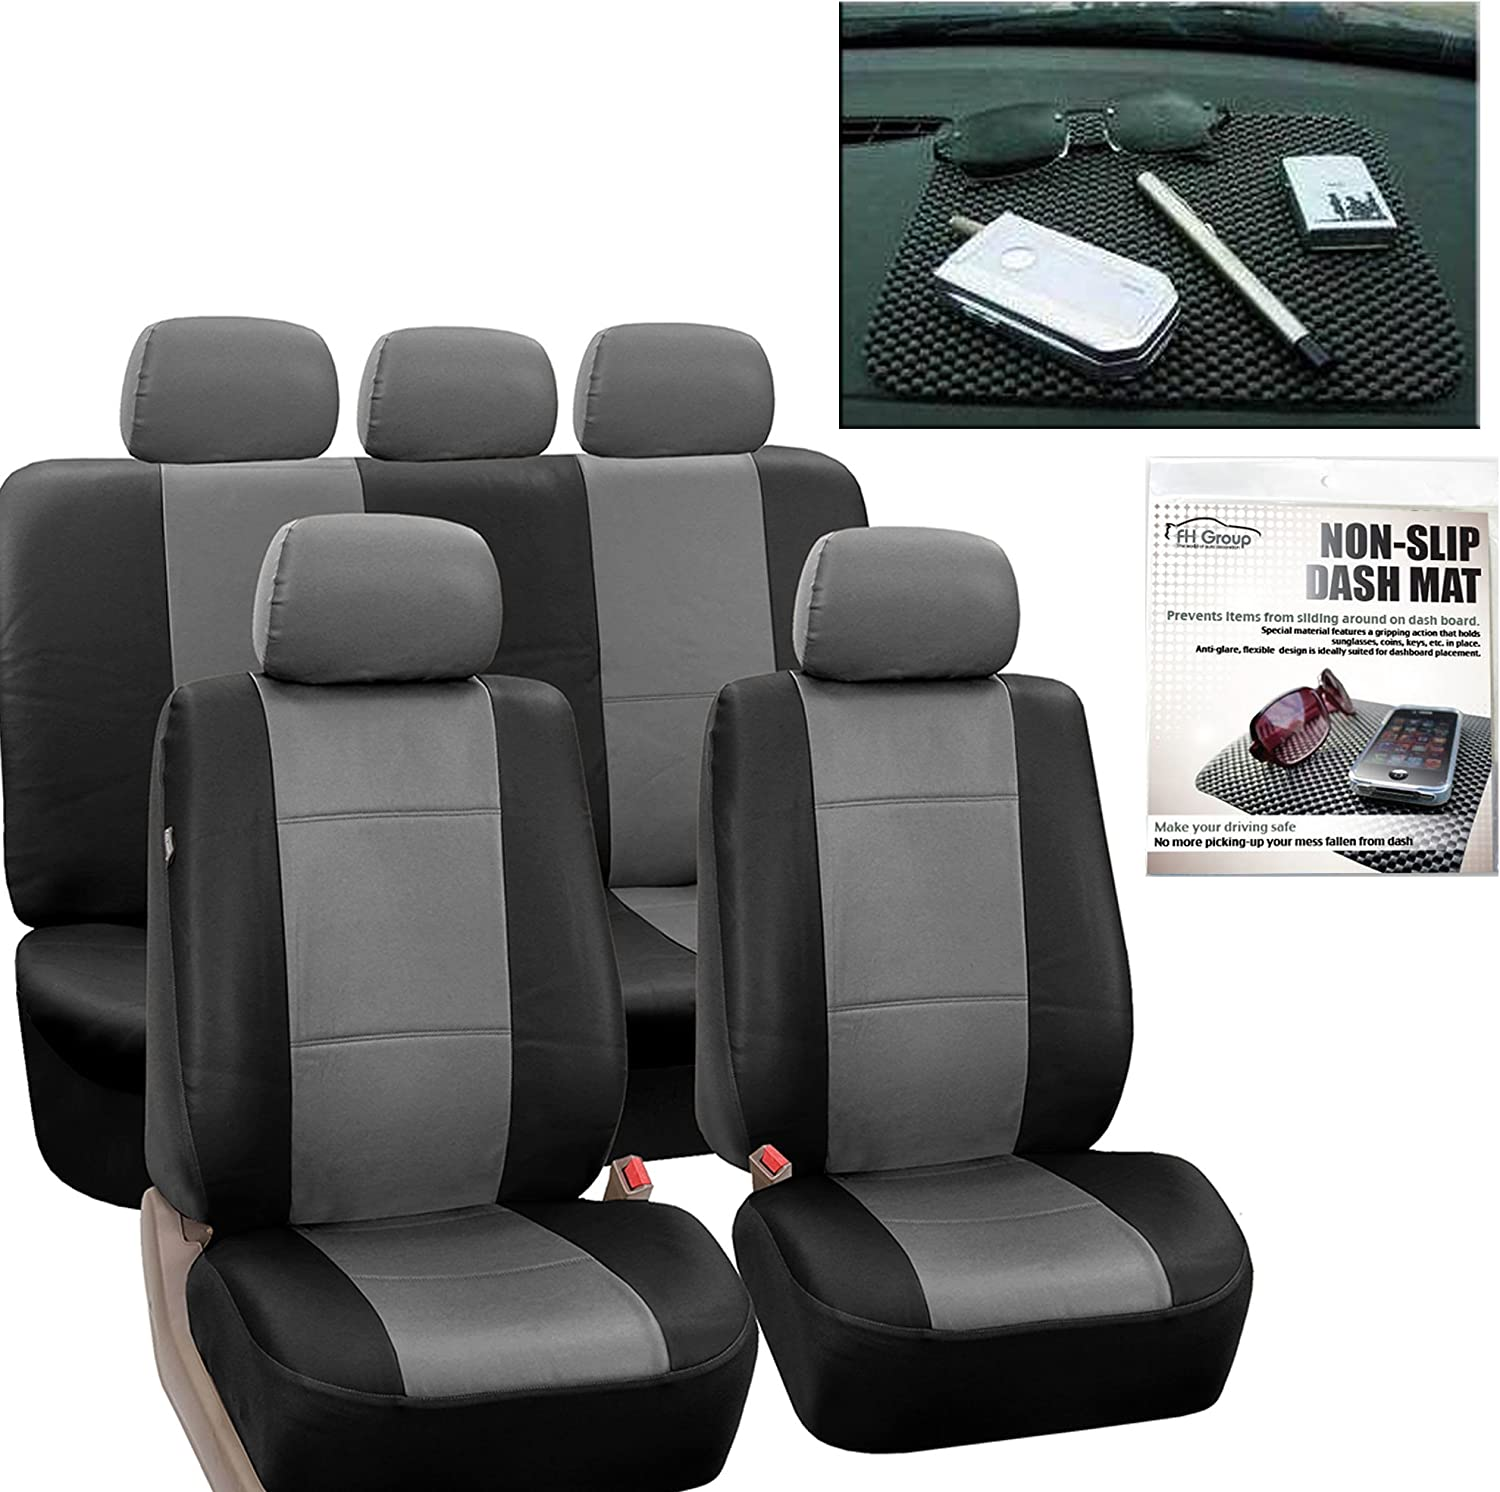 FH Group PU002115 Classic PU Leather Car Seat Covers, Airbag Compatible and Split Bench w. FH1002 Non-Slip Dash Grip Pad- Fit Most Car, Truck, SUV, or Van (Gray Black)